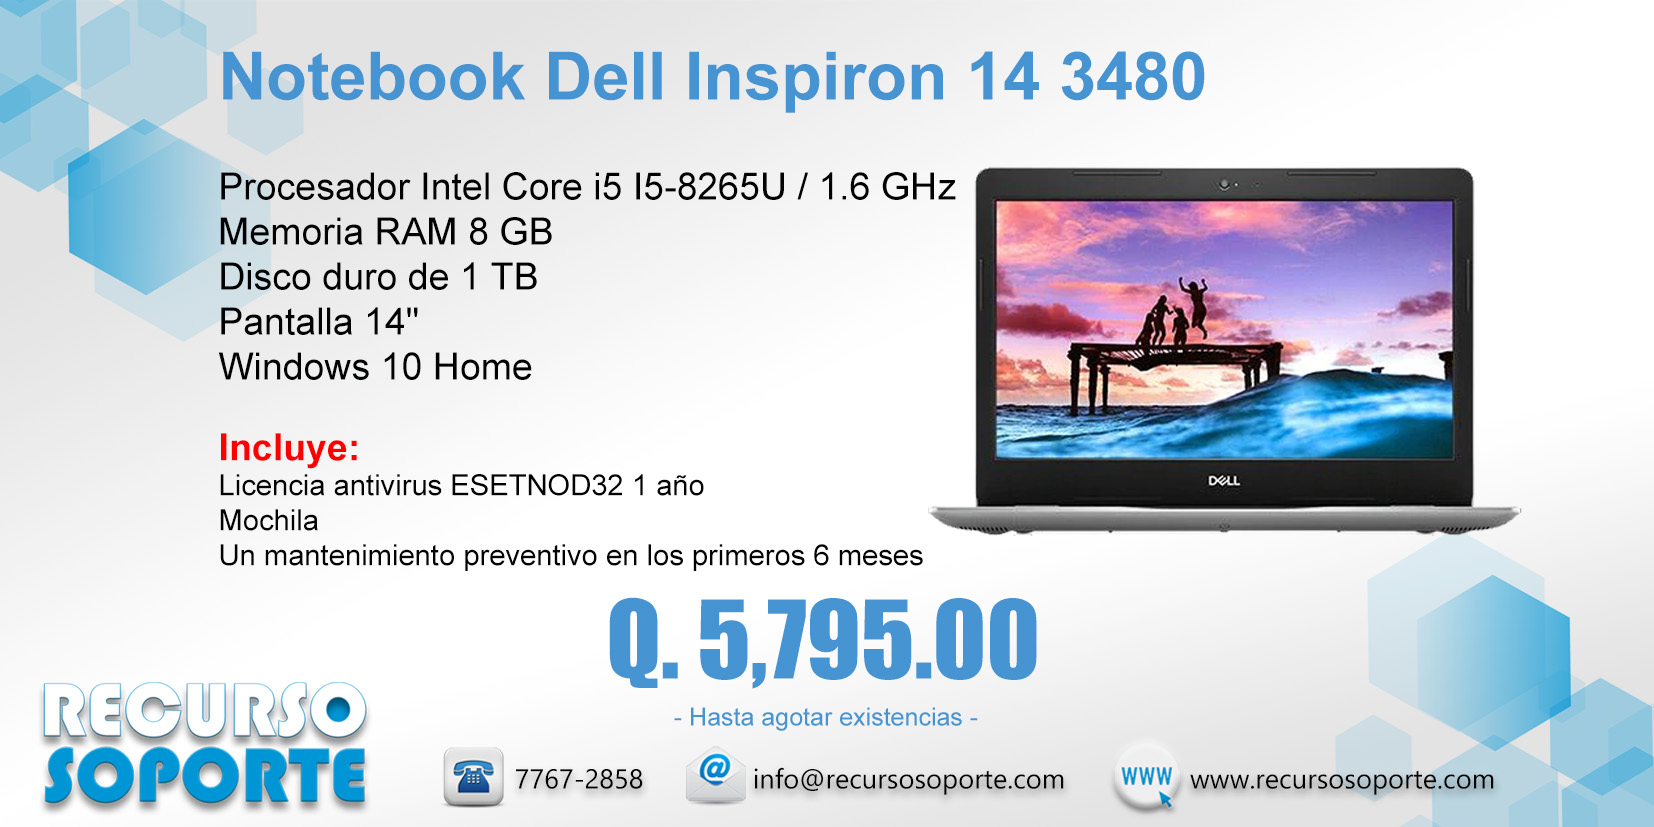 Notebook Dell Inspiron 14 3480